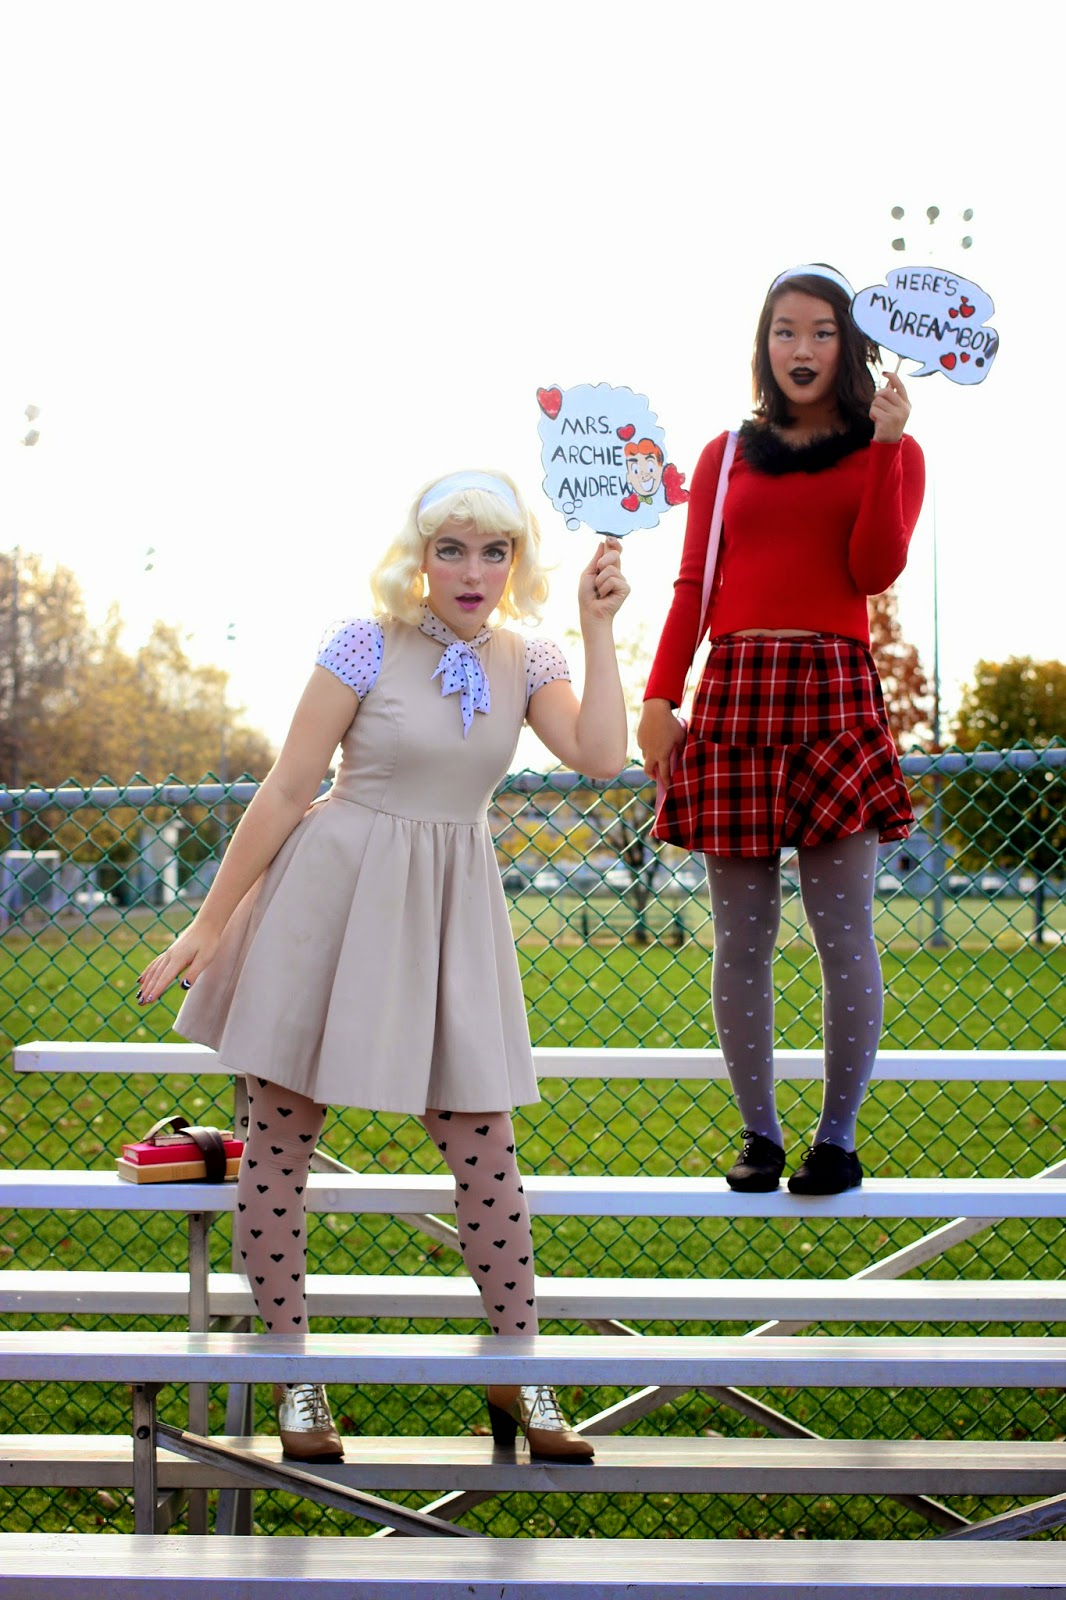 betty and veronica halloween costume, original halloween costume, couple halloween costume, archies girls